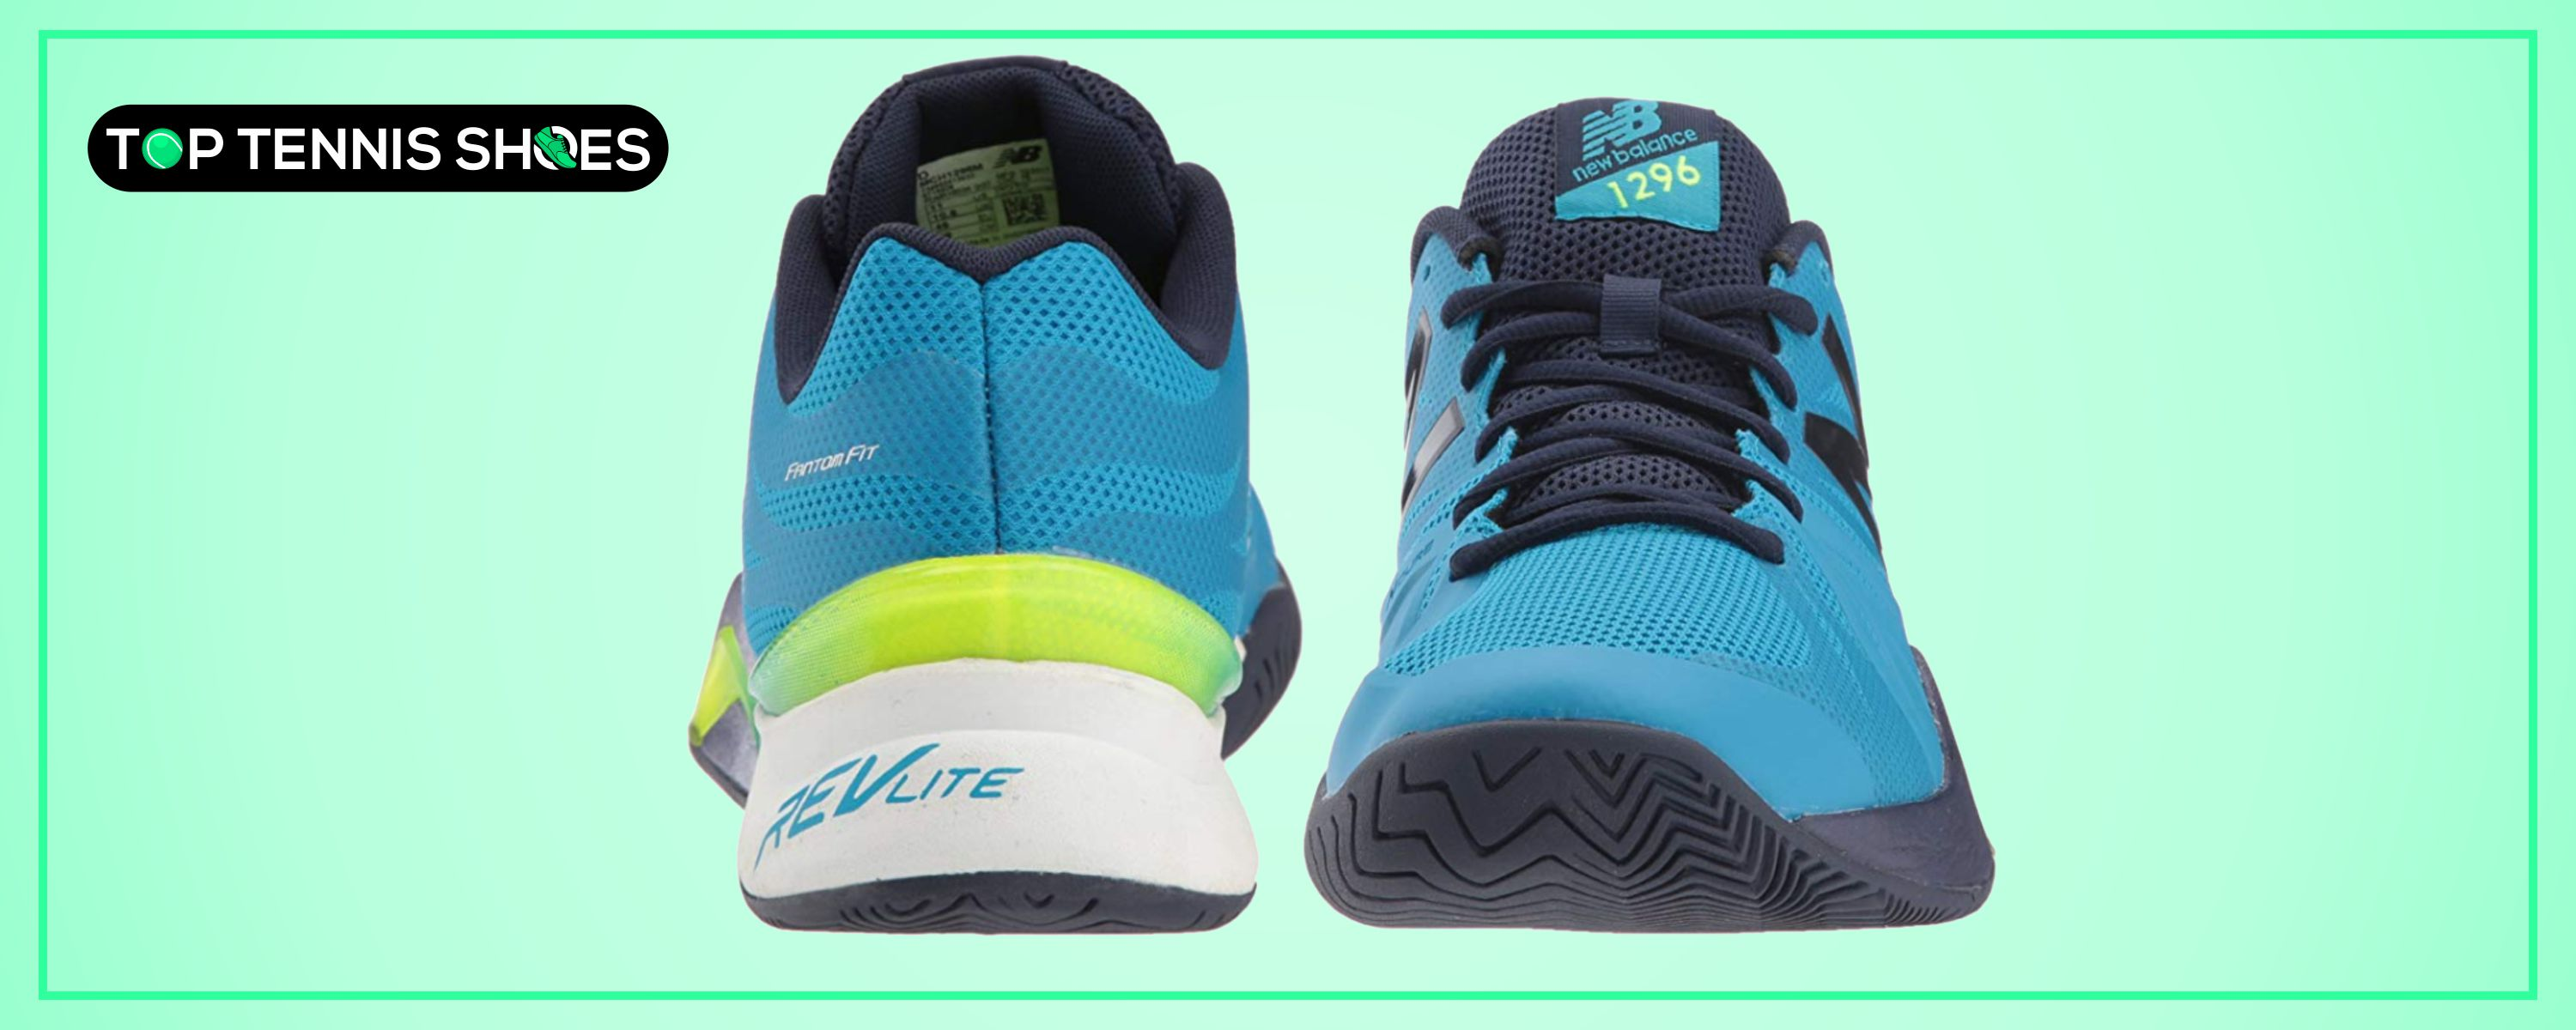 Perfect Tennis Shoes for Plantar Fasciitis